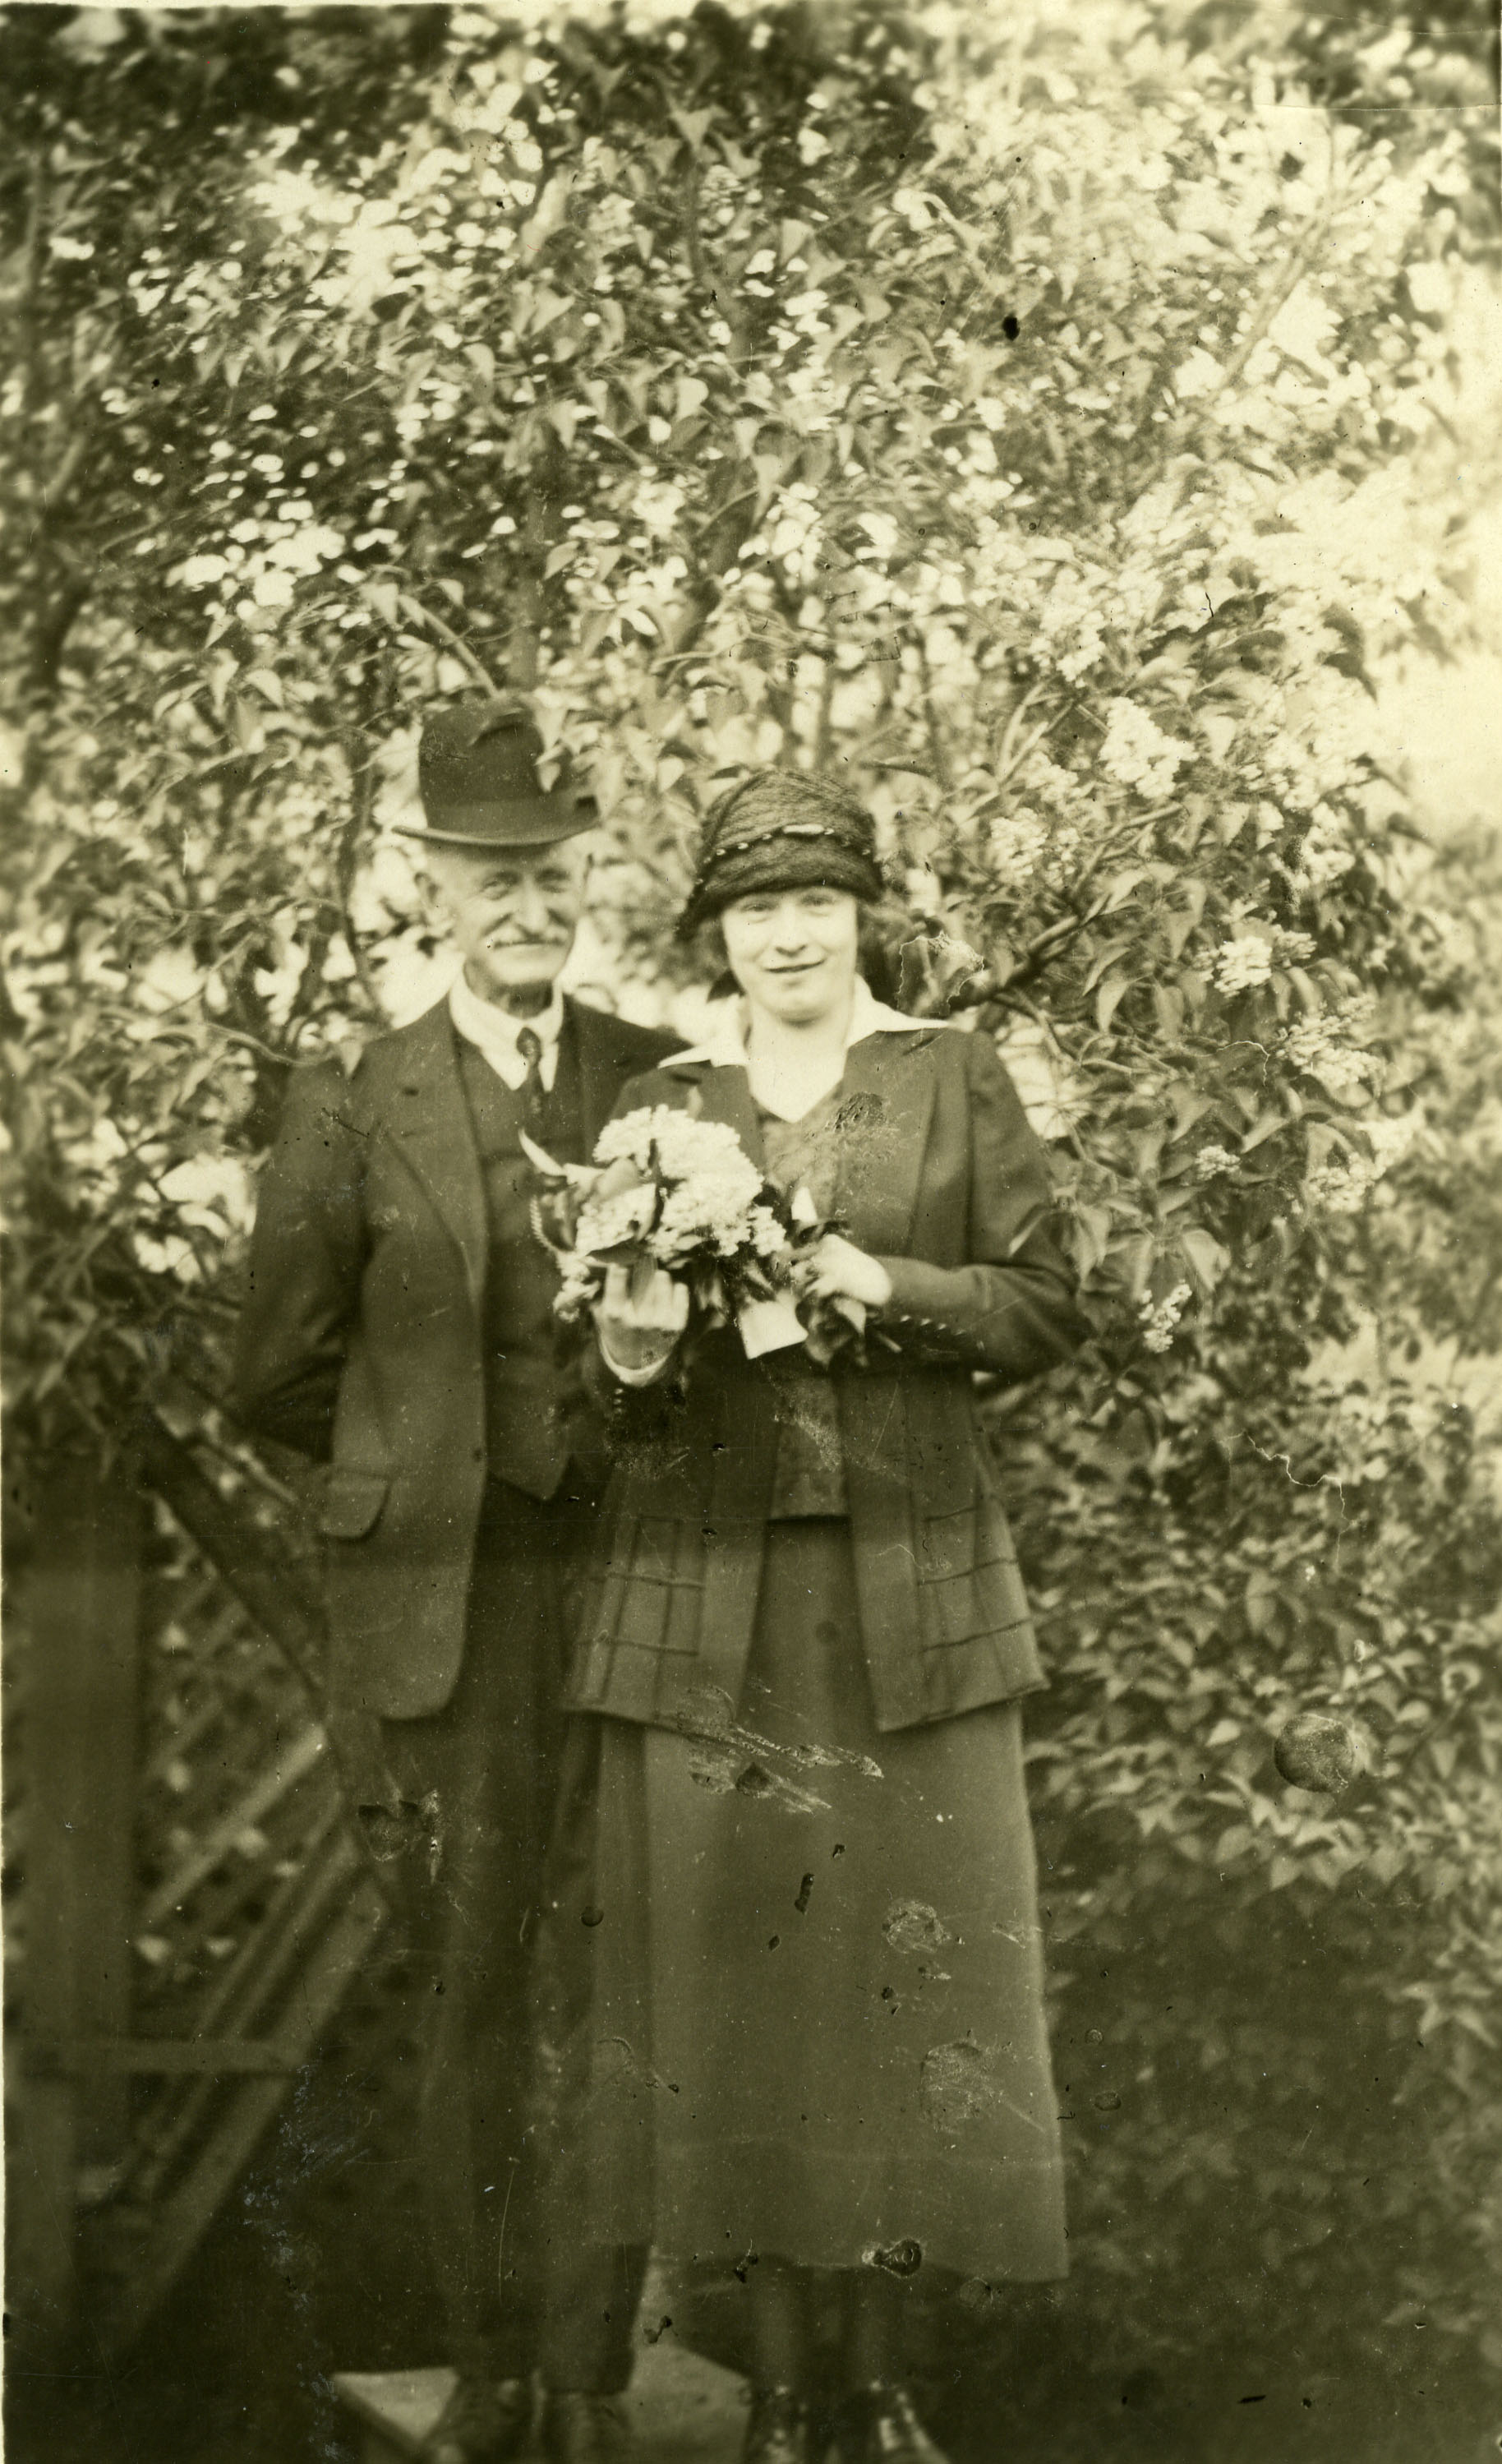 William & Sarah Dickey, c.1920.